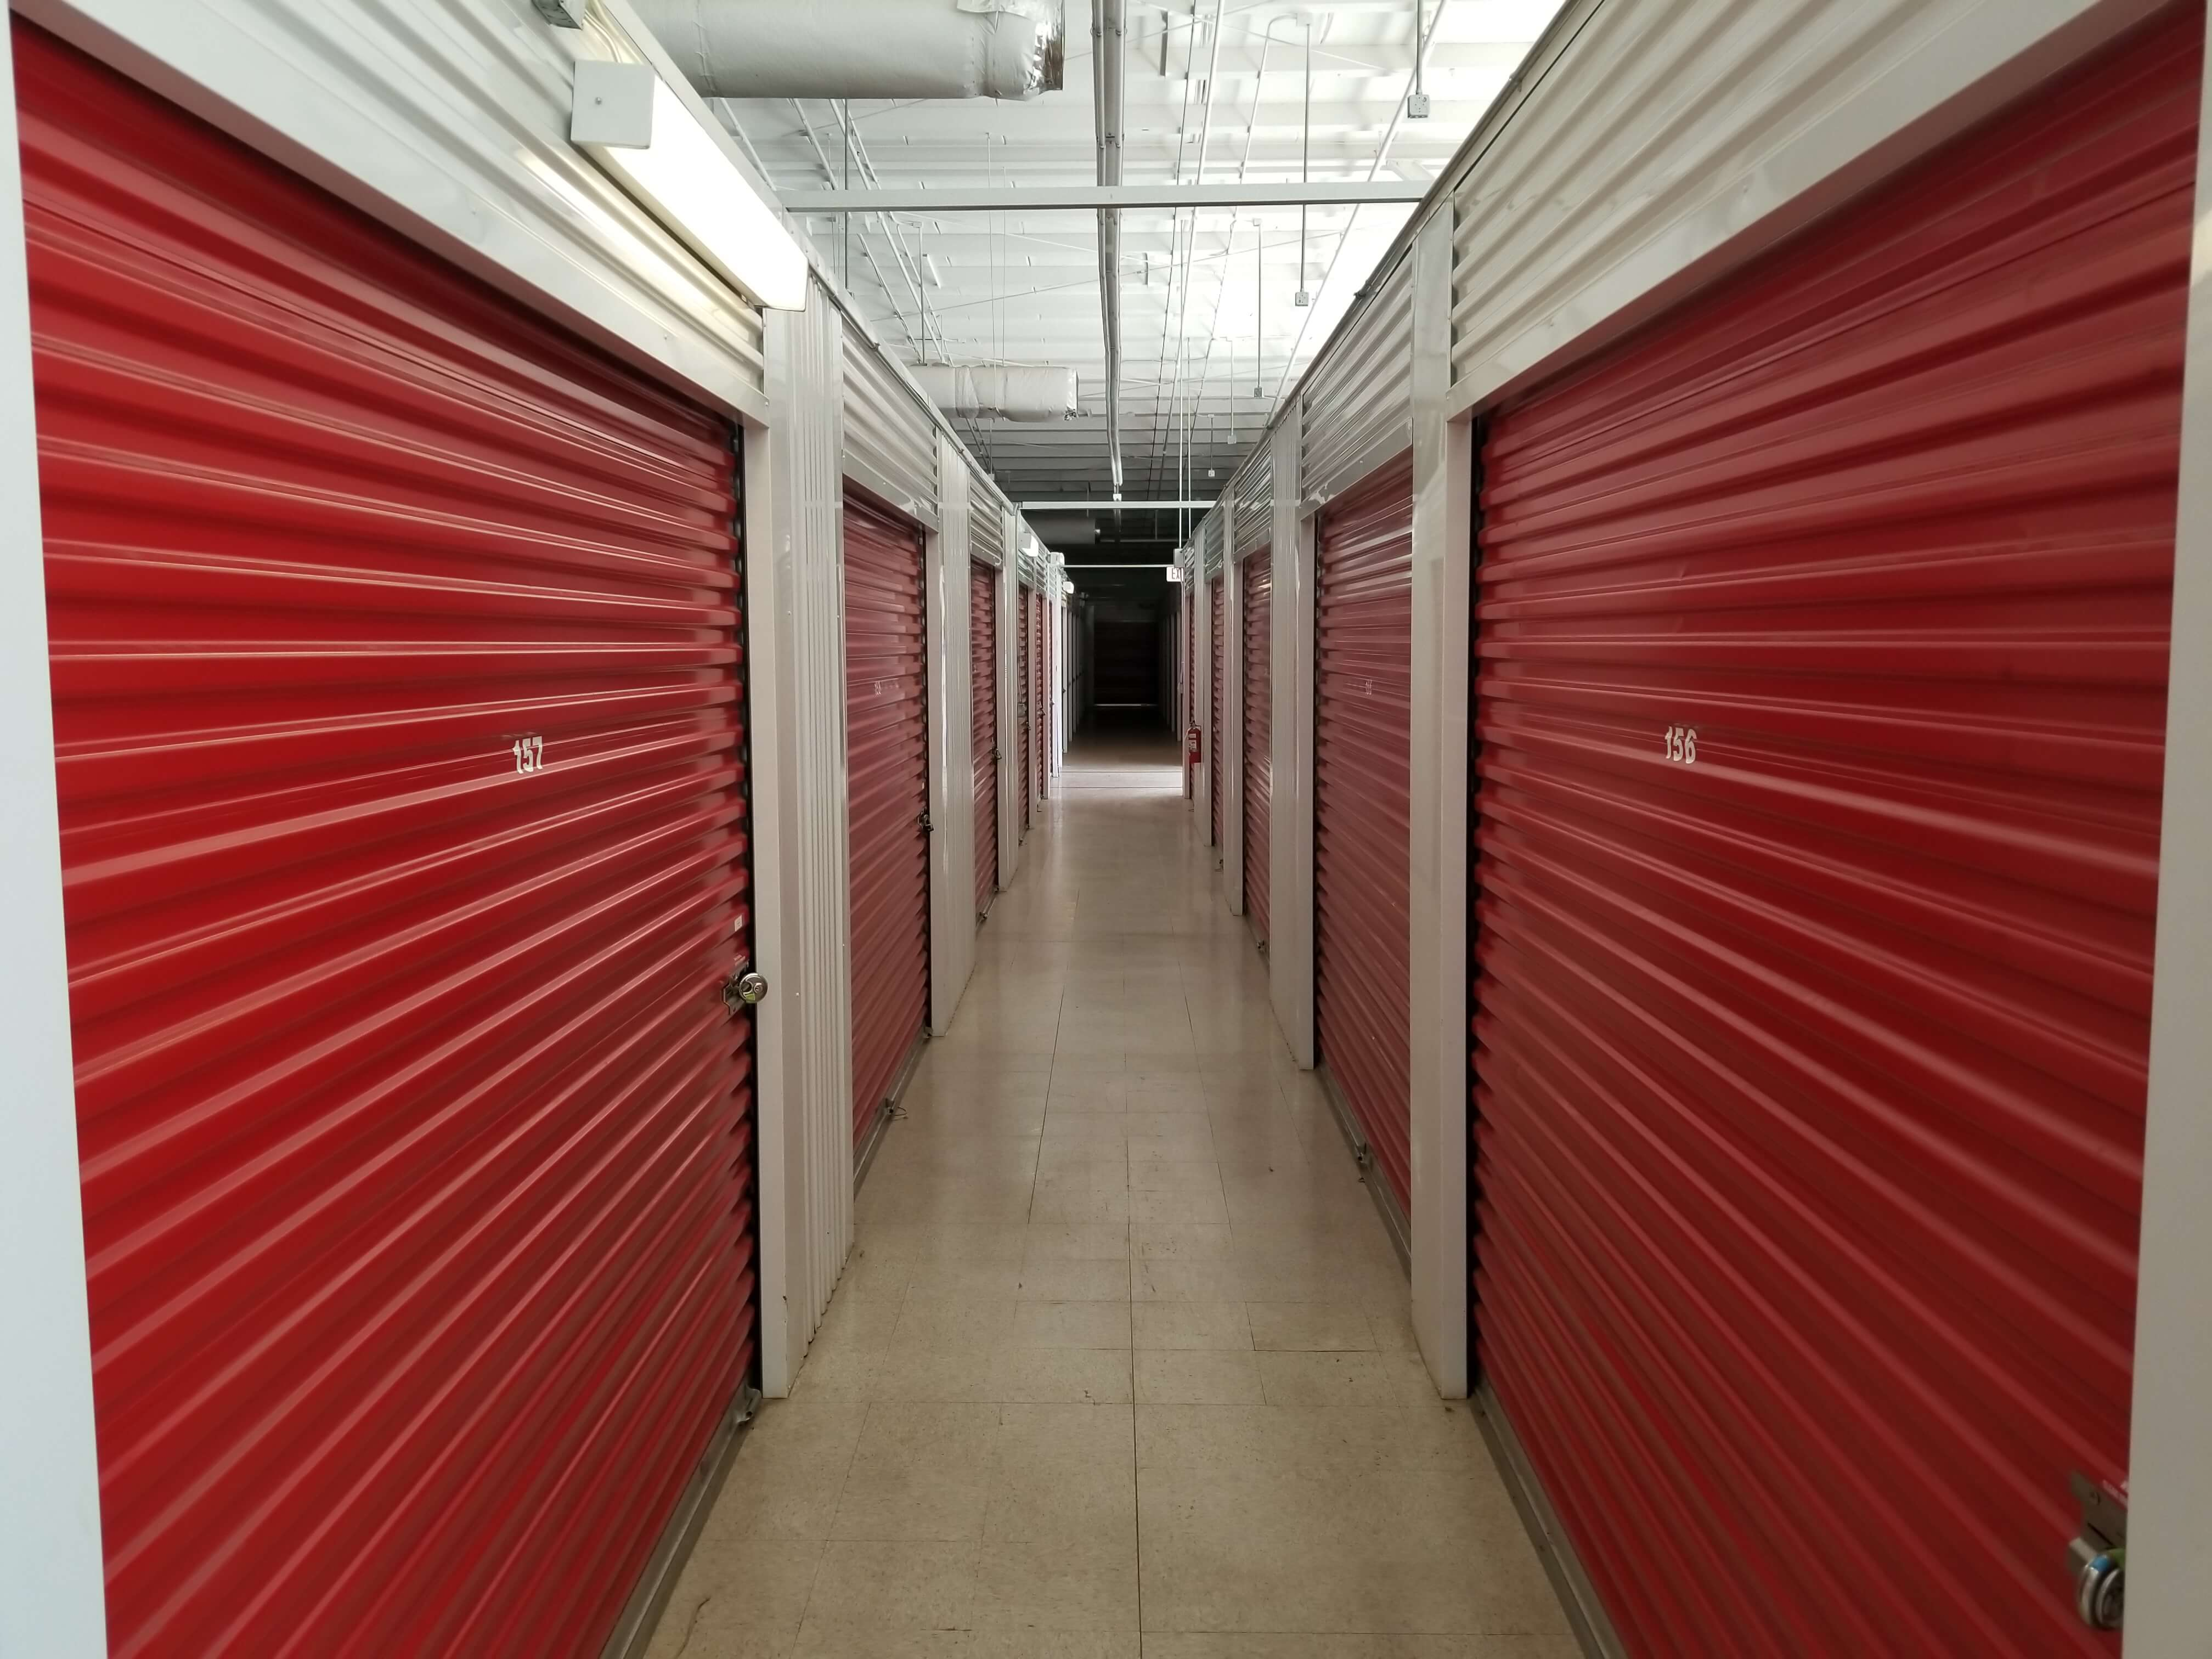 Inside row of storage units at Smart Stop self storage facility located at 550 Swannanoa River Road, Asheville North Carolina